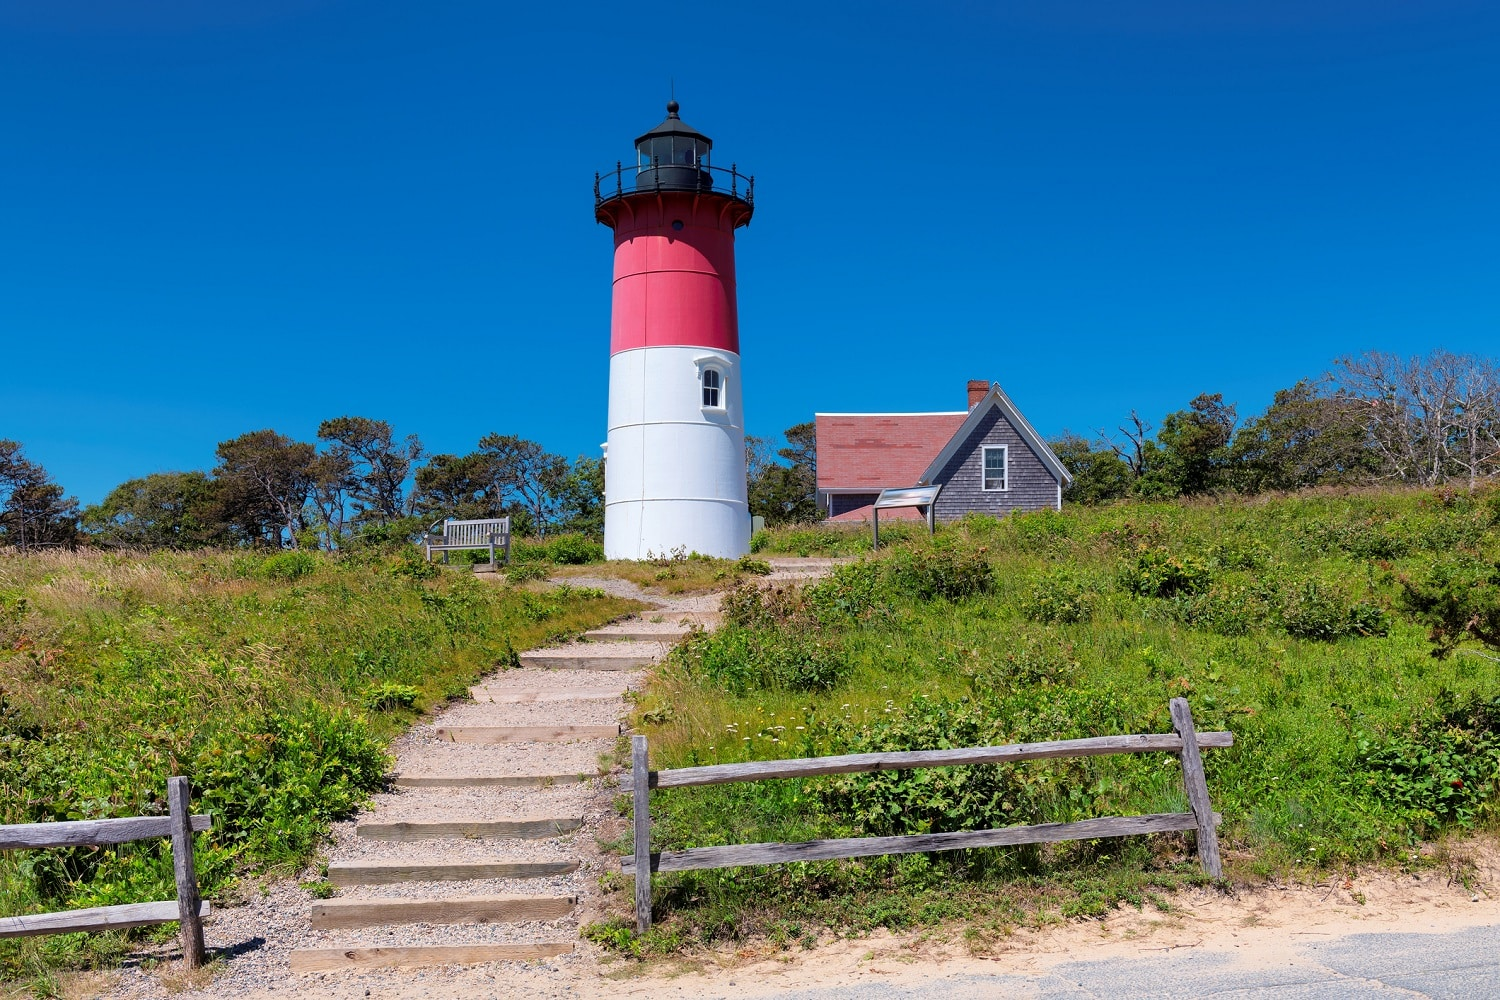 steps leading to a red, white and black lighthouse against a blue sky